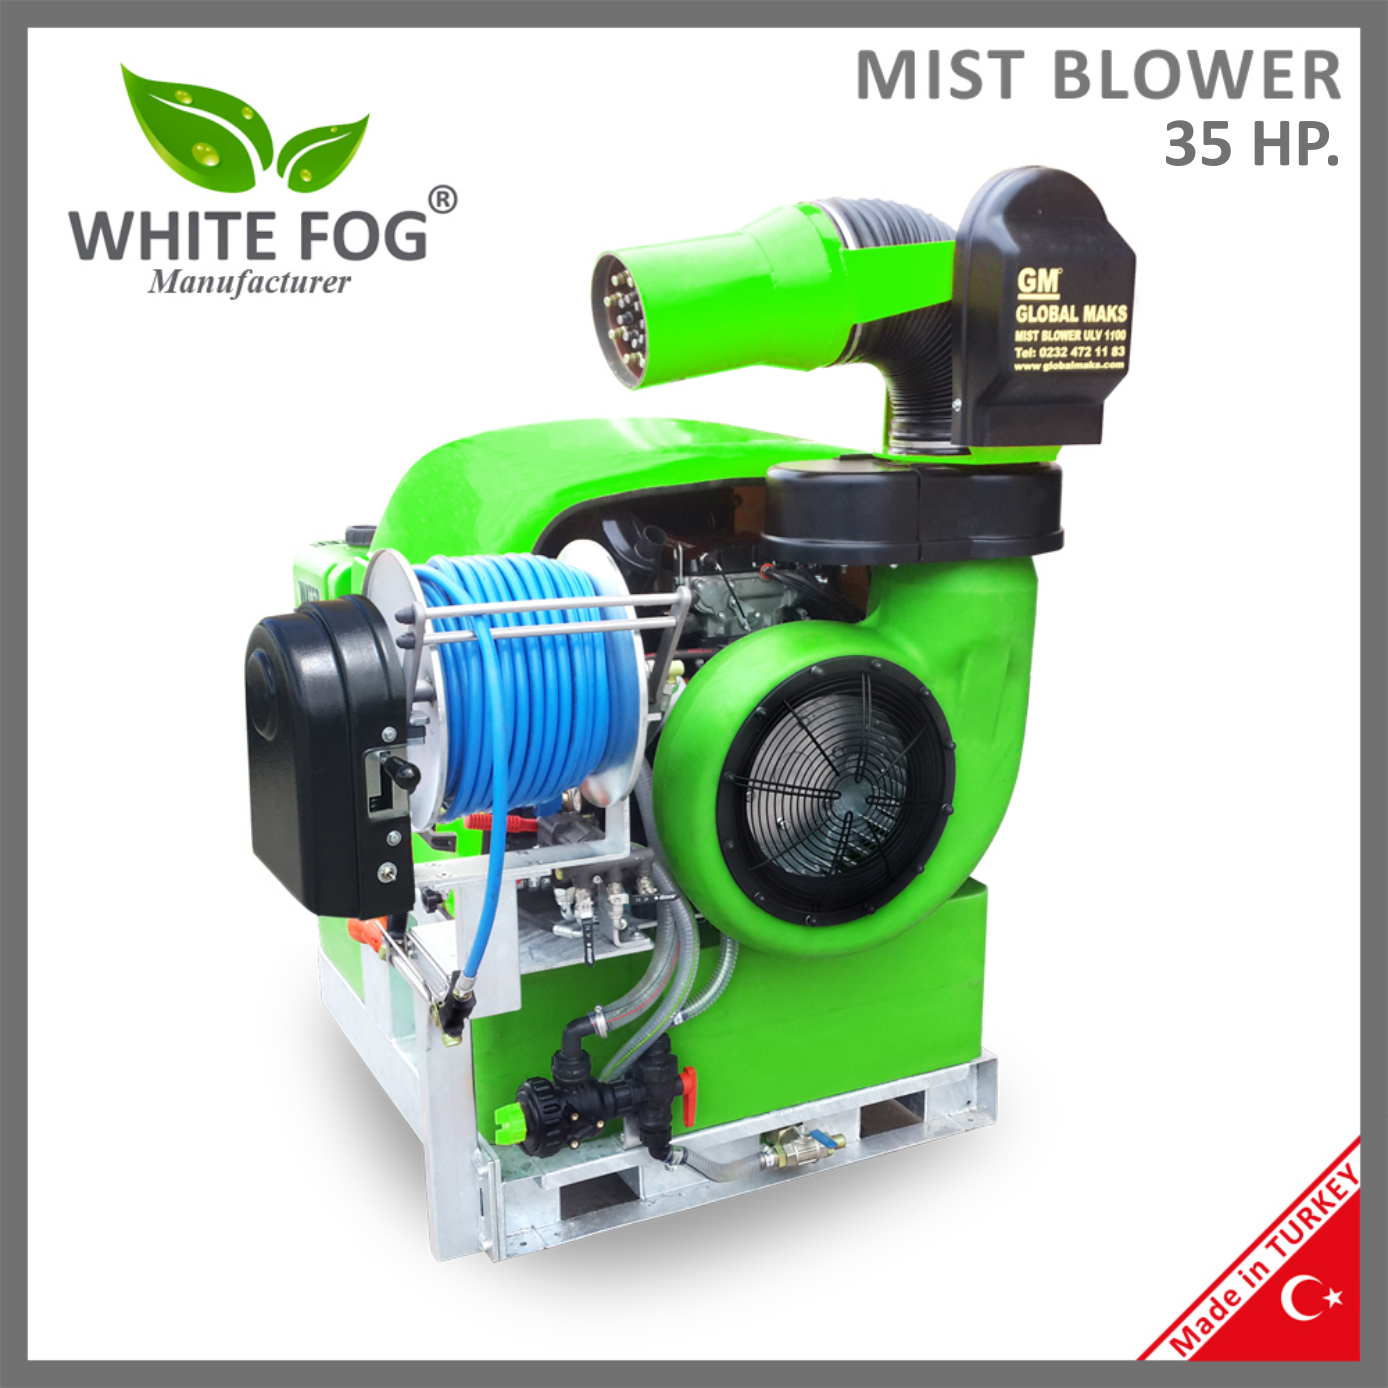 Automatic Nozzle Head locust insecticide pesticide spraying sprayer fogging fogger machine Mist Blower 35HP